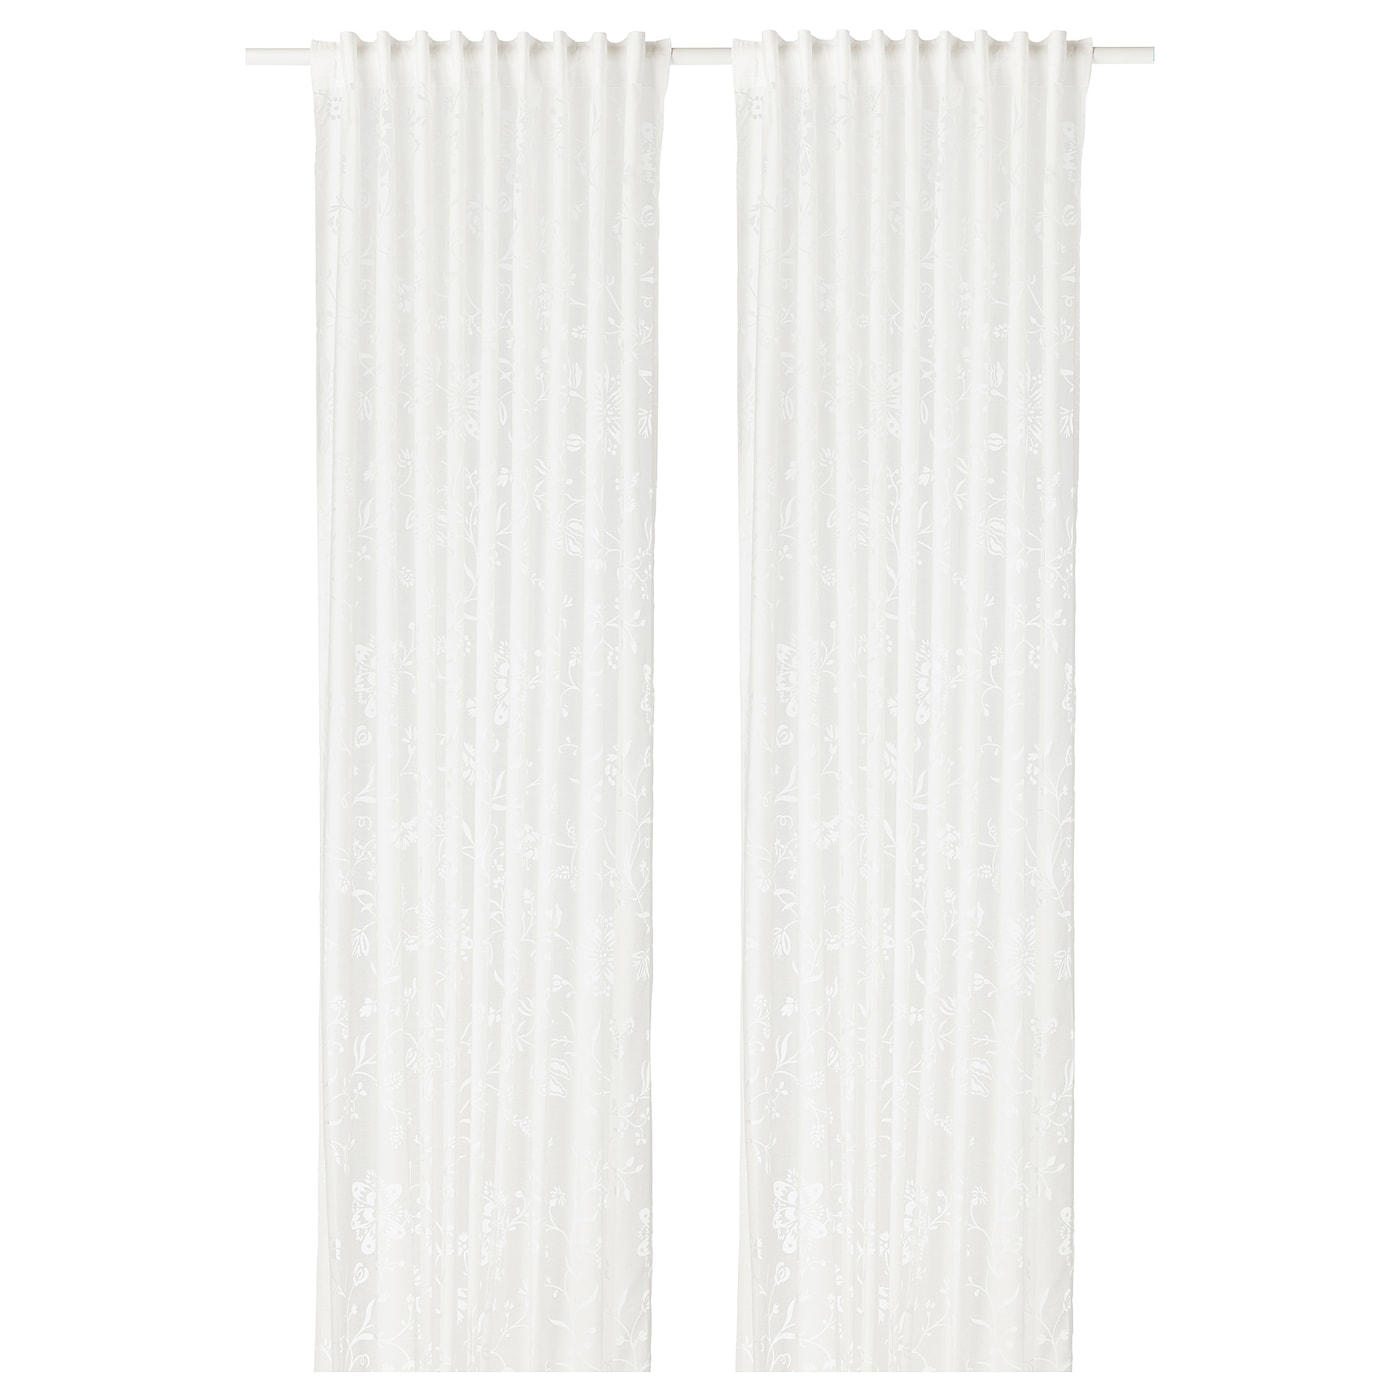 IKEA BORGHILD sheer curtains, 1 pair The curtains can be used on a curtain rod or a curtain track.